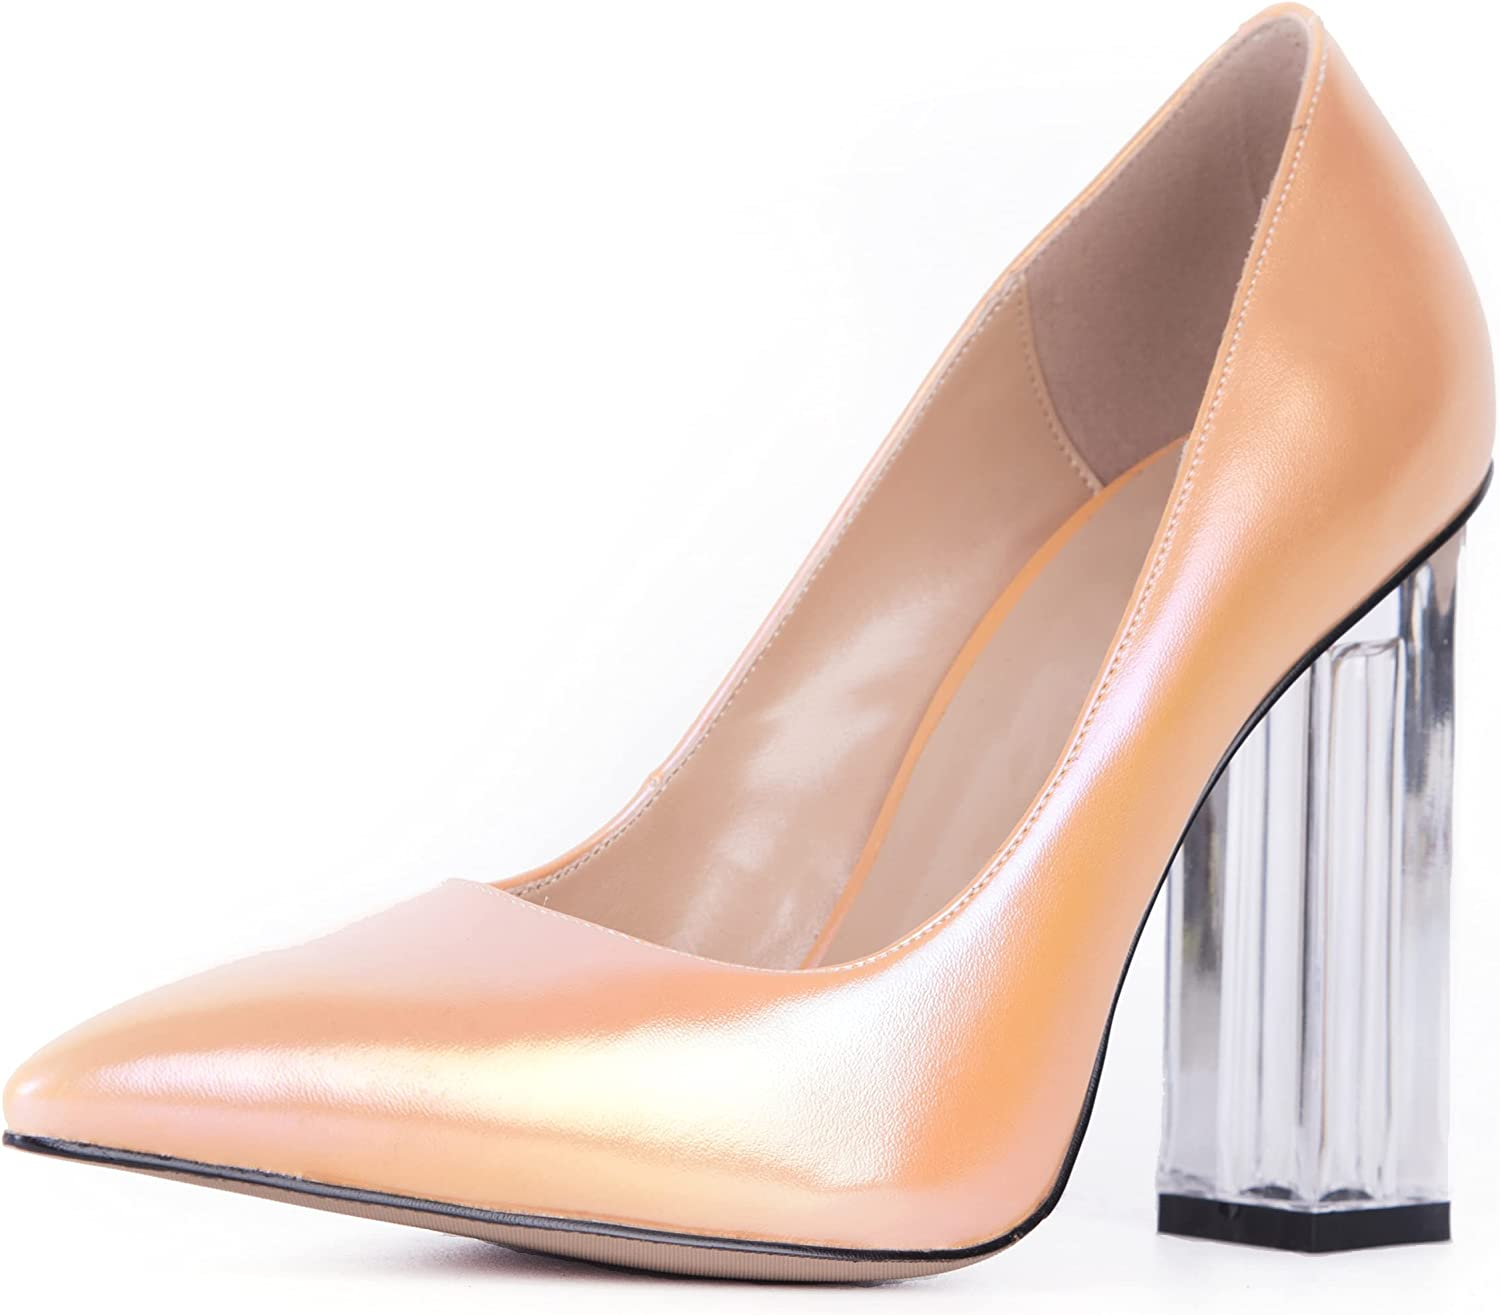 SOPHITINA New product!! Transparent Square Block Heels Pointed for Sexy Women Max 87% OFF